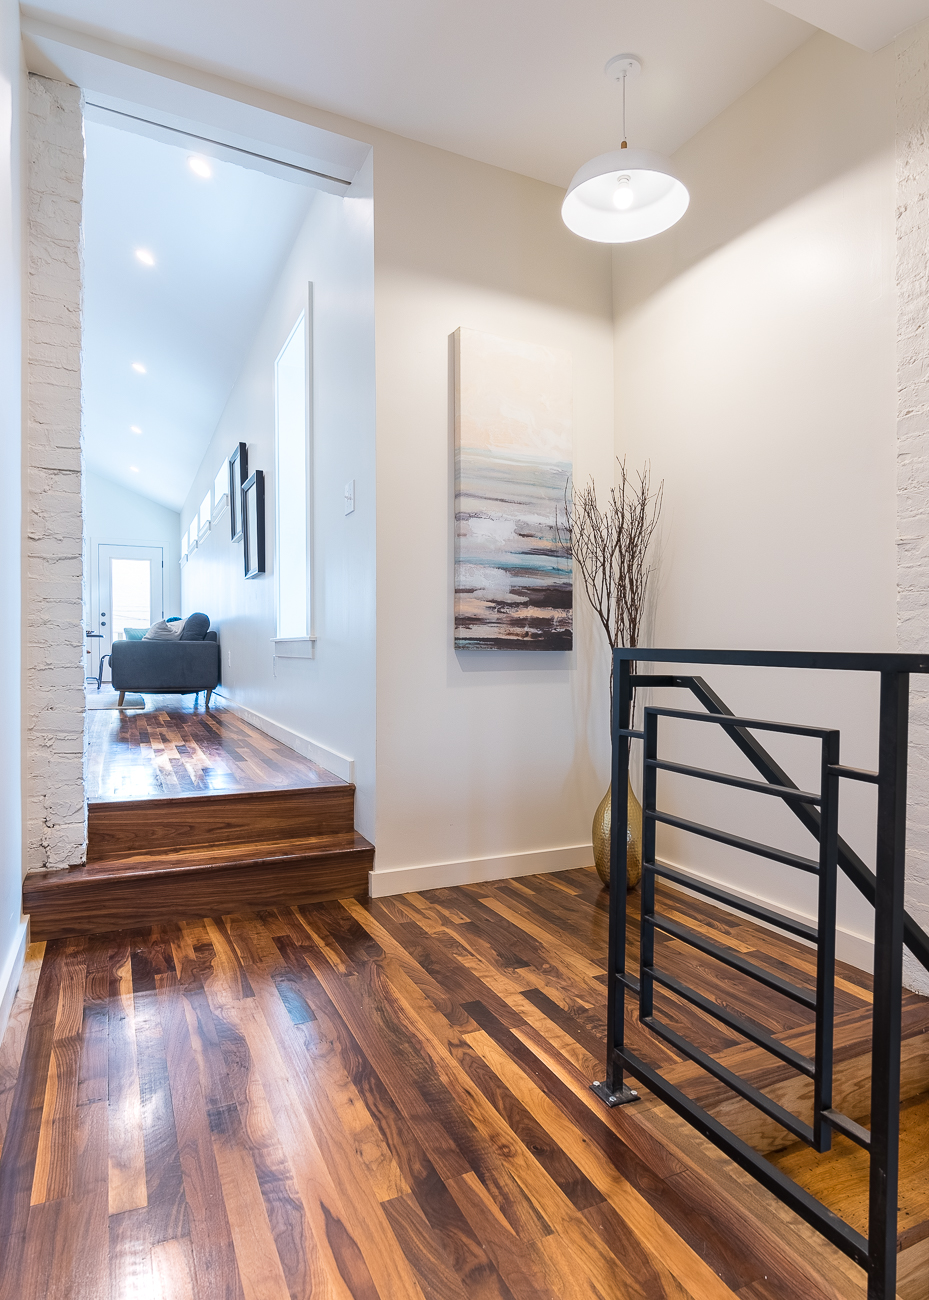 1430 Main Street in Over-the-Rhine is a 2,100-square-foot, single-family home with 2 bedrooms, 2.5 bathrooms, a private deck, a dedicated parking spot, gourmet kitchen, and three floors of living space. It is listed for $535,000. / Image: Phil Armstrong, Cincinnati Refined // Published: 8.25.18